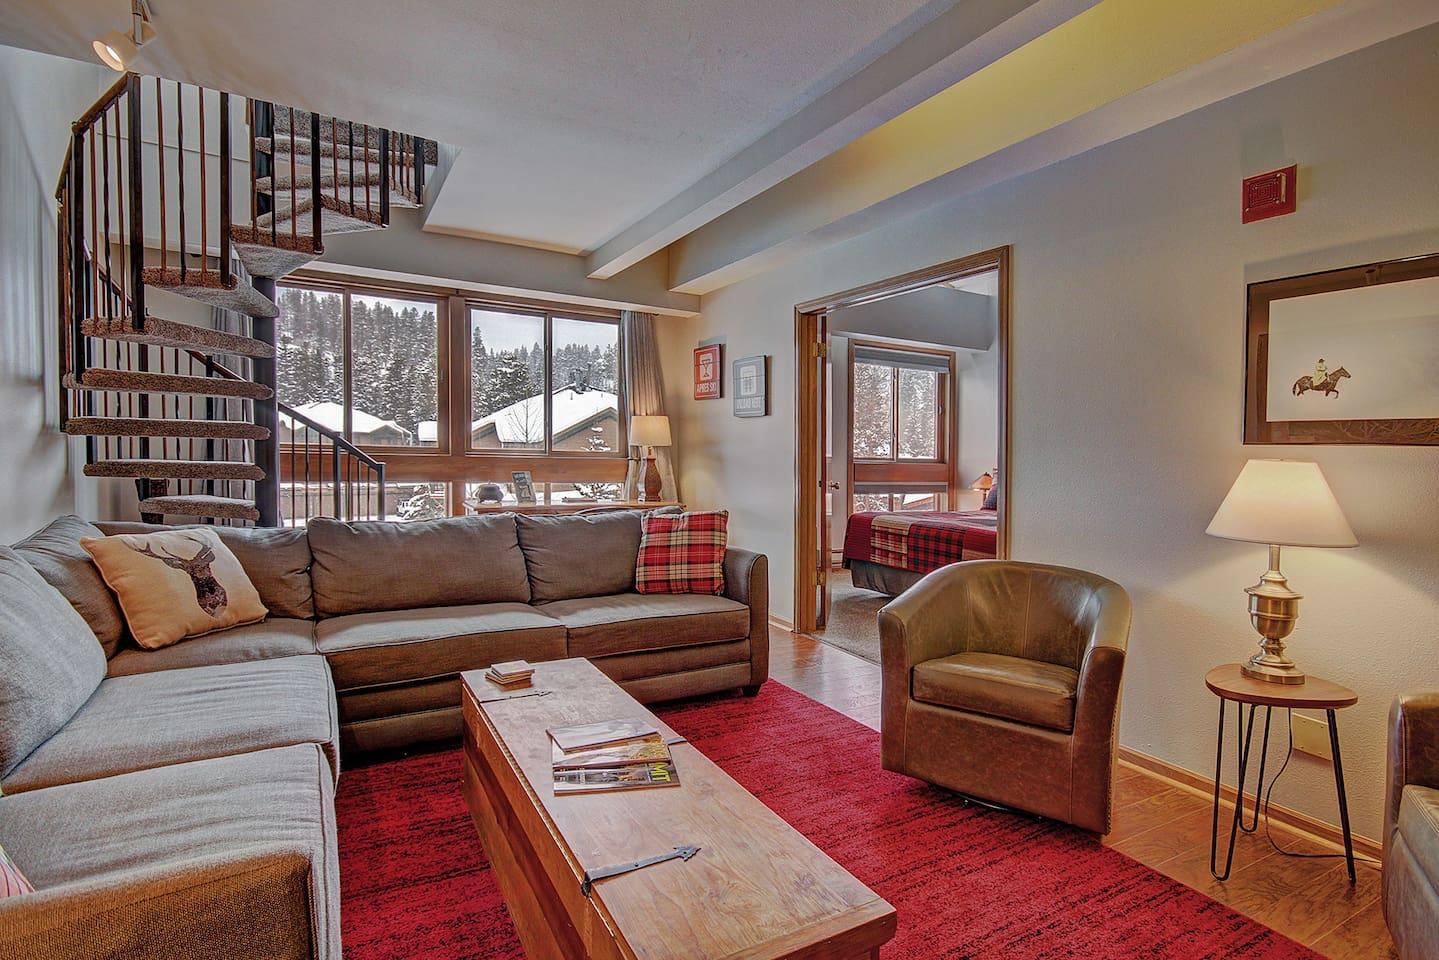 Ski Hill 22 - a SkyRun Breckenridge Property - Living area with spiral staircase to upper level